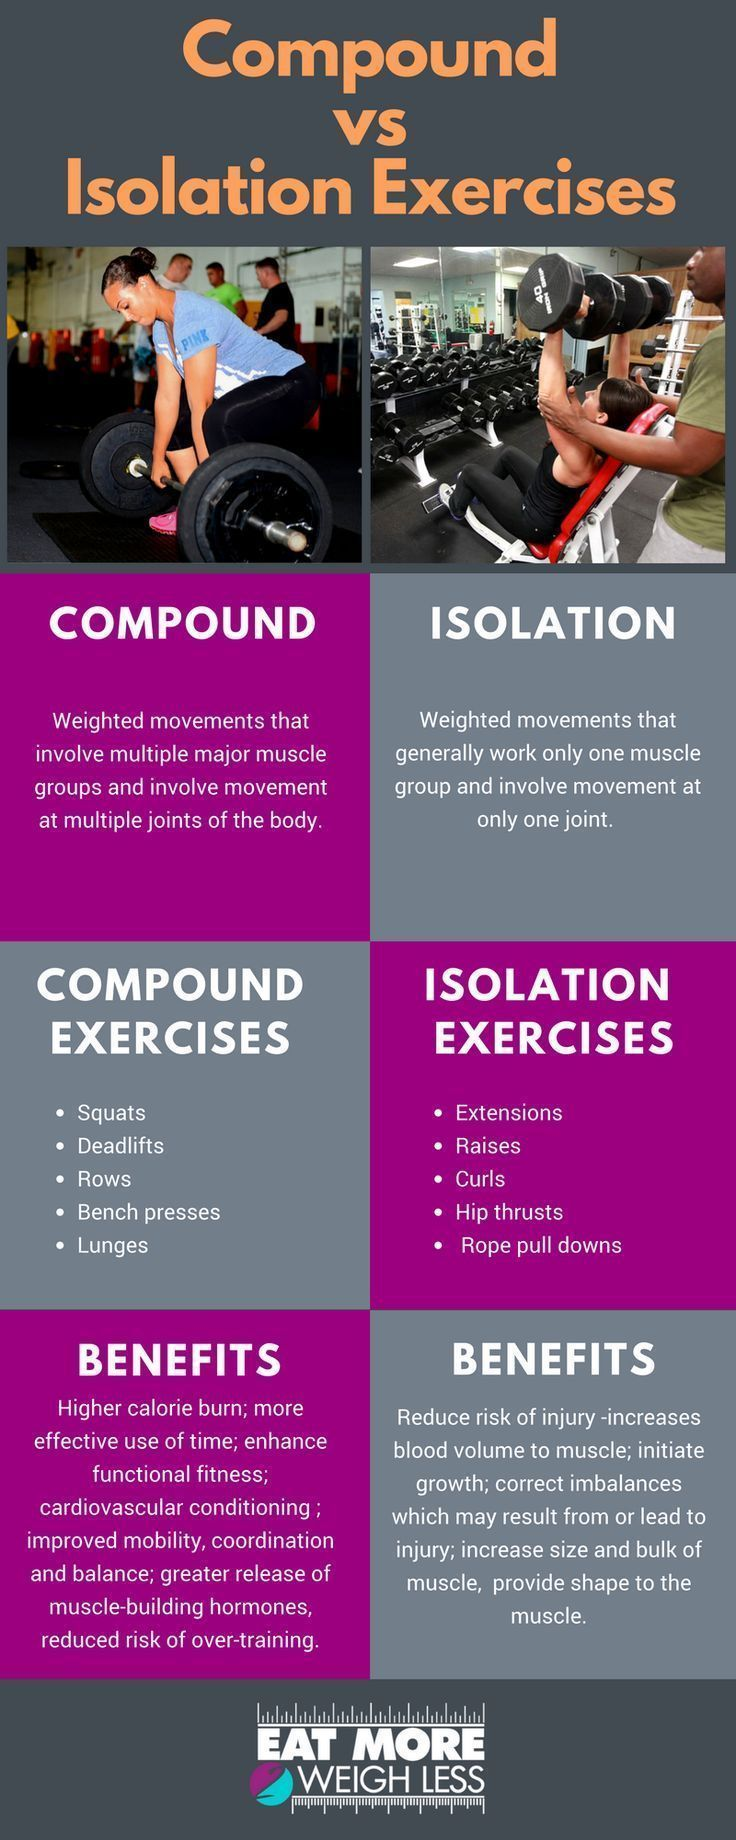 Compound vs Isolation Exercises - Eat More 2 Weigh Less